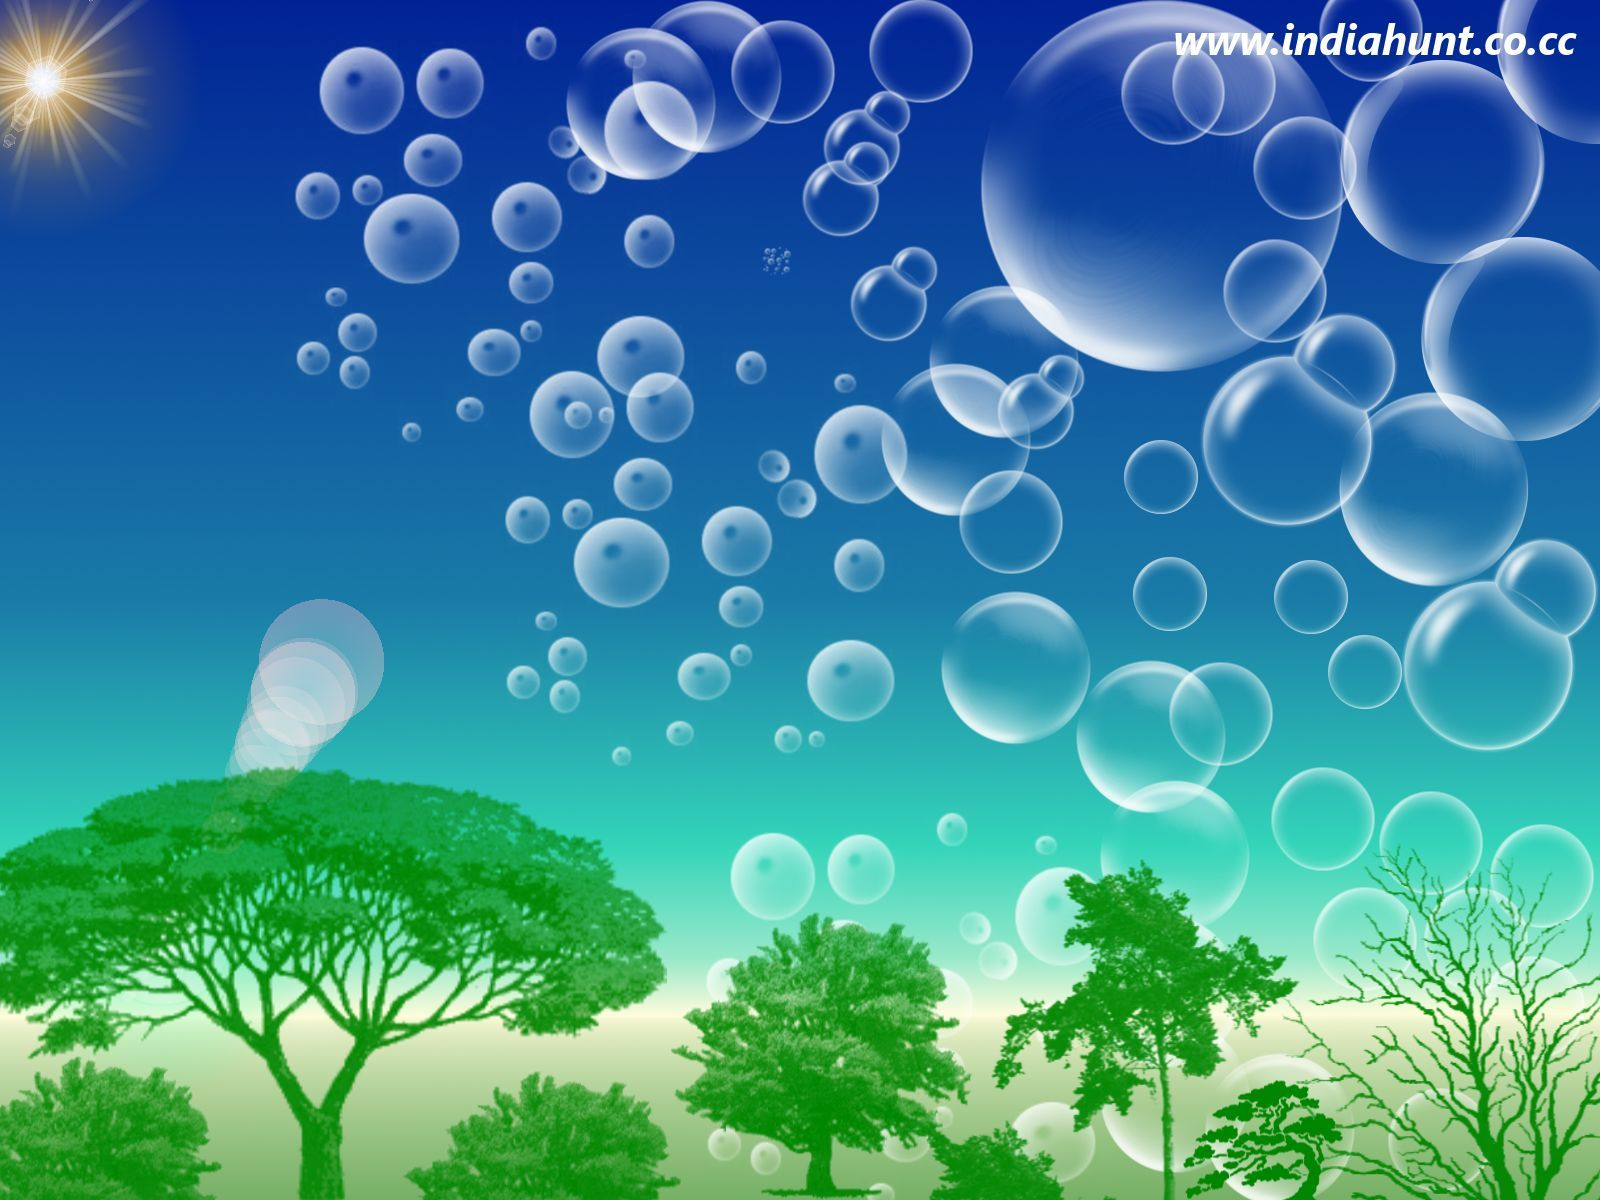 Live Animated Wallpaper In 2019 Moving Wallpapers Free